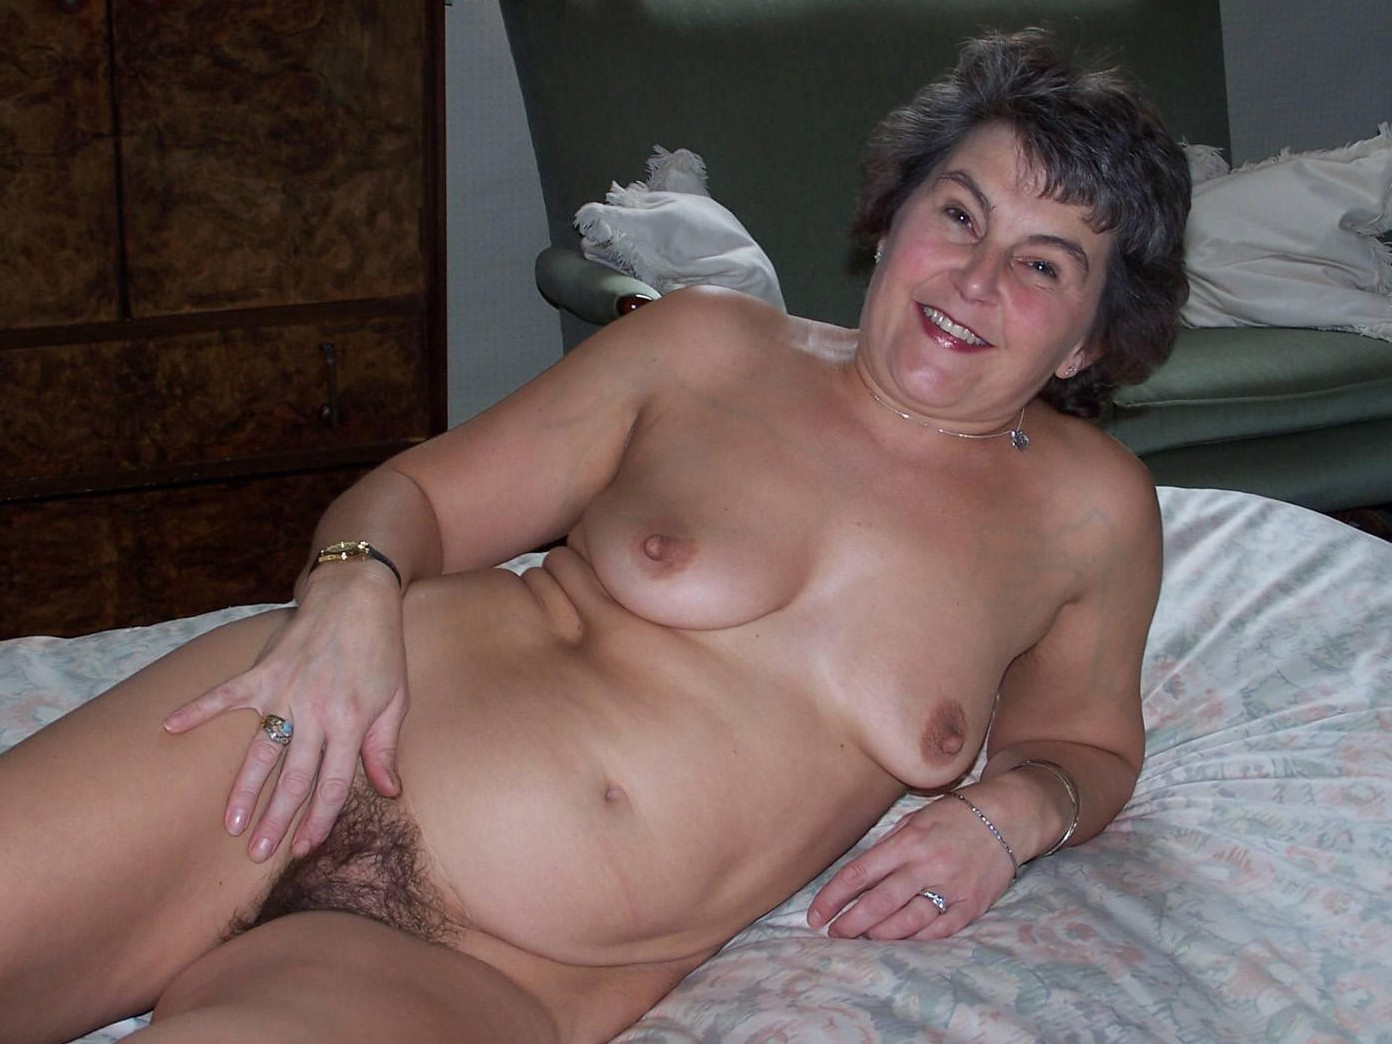 Granny Nude Photos Porn Photo Granny Bbw Nude Oma  Hot Girl Hd Wallpaper-2109